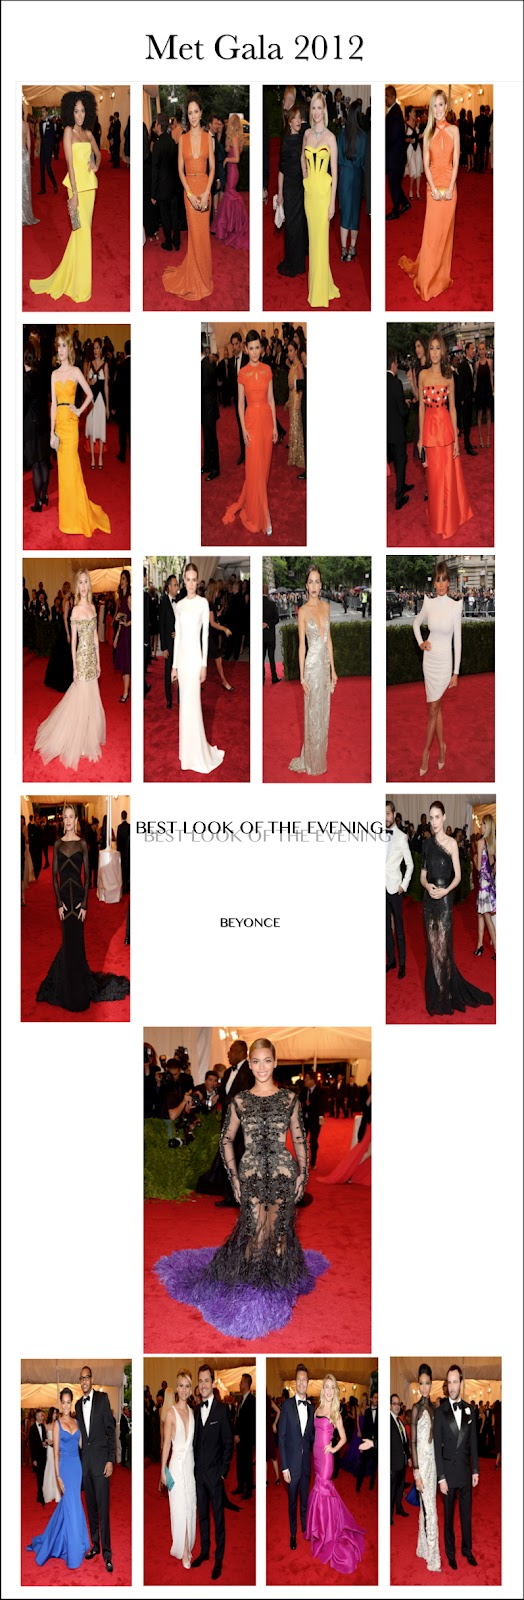 met-gala-2012-best-dressed